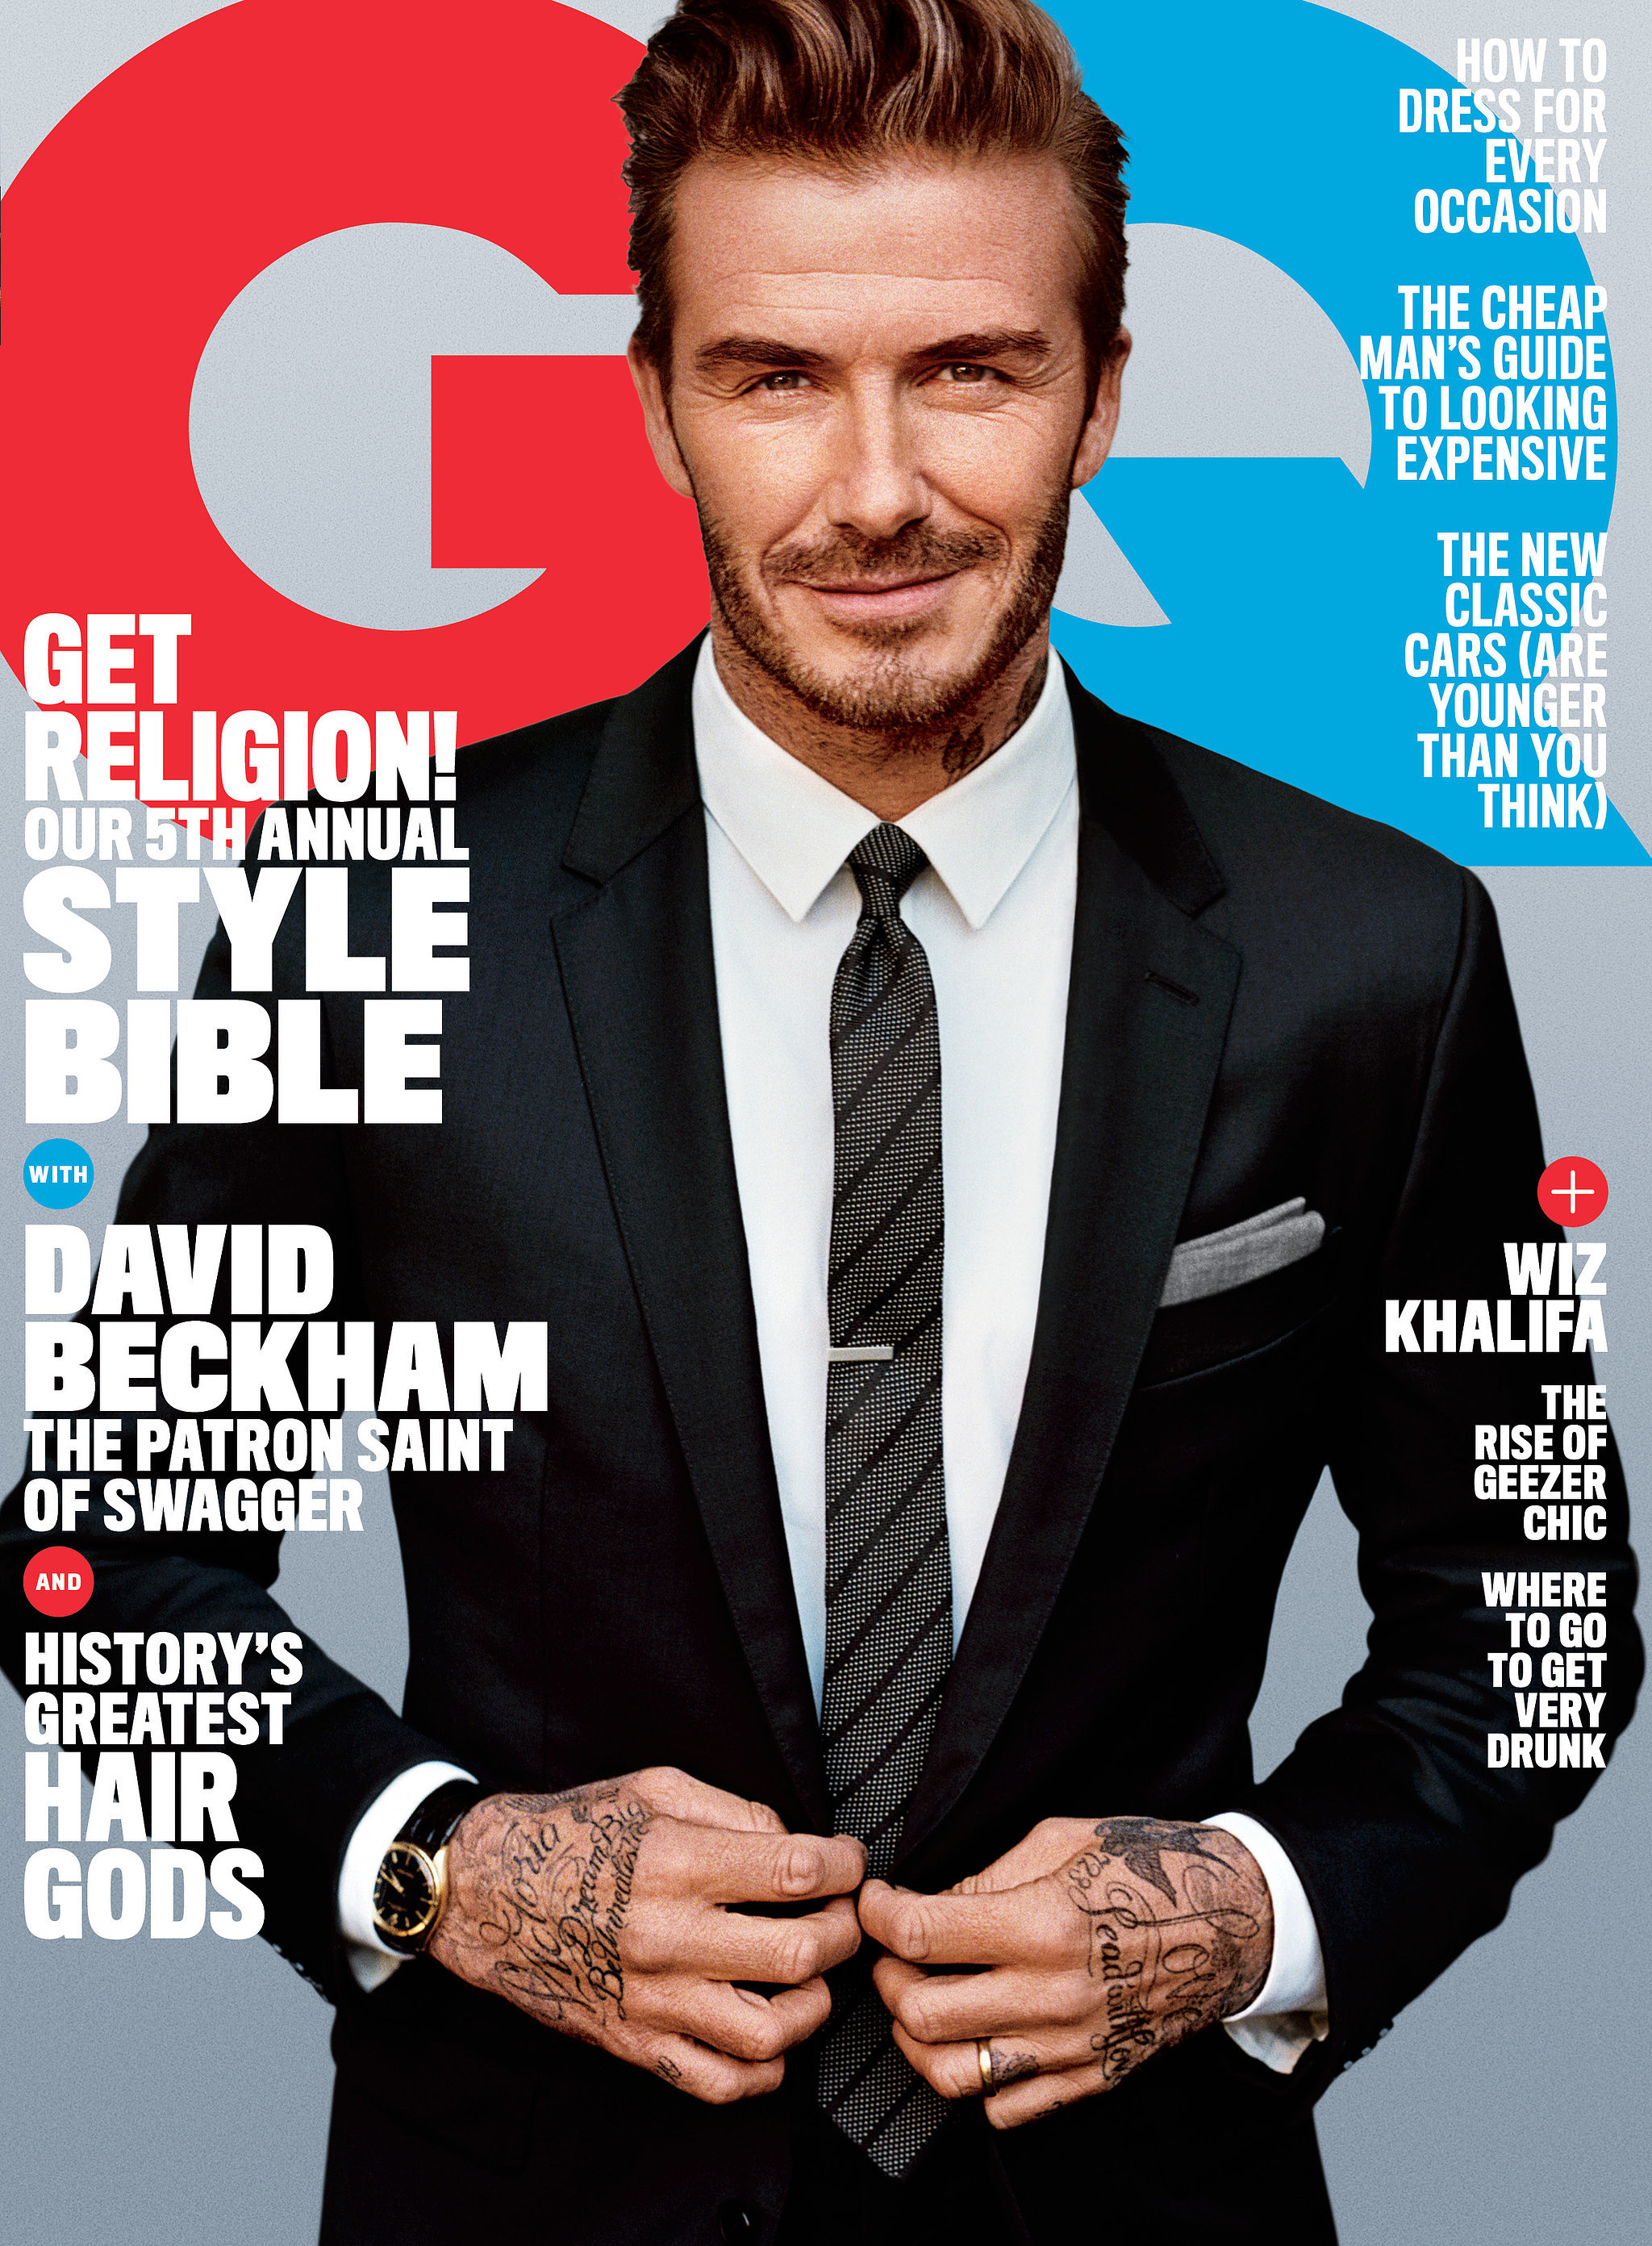 Gq Magazine The Secrets Of R Kelly: David Beckham In GQ Magazine April 2016